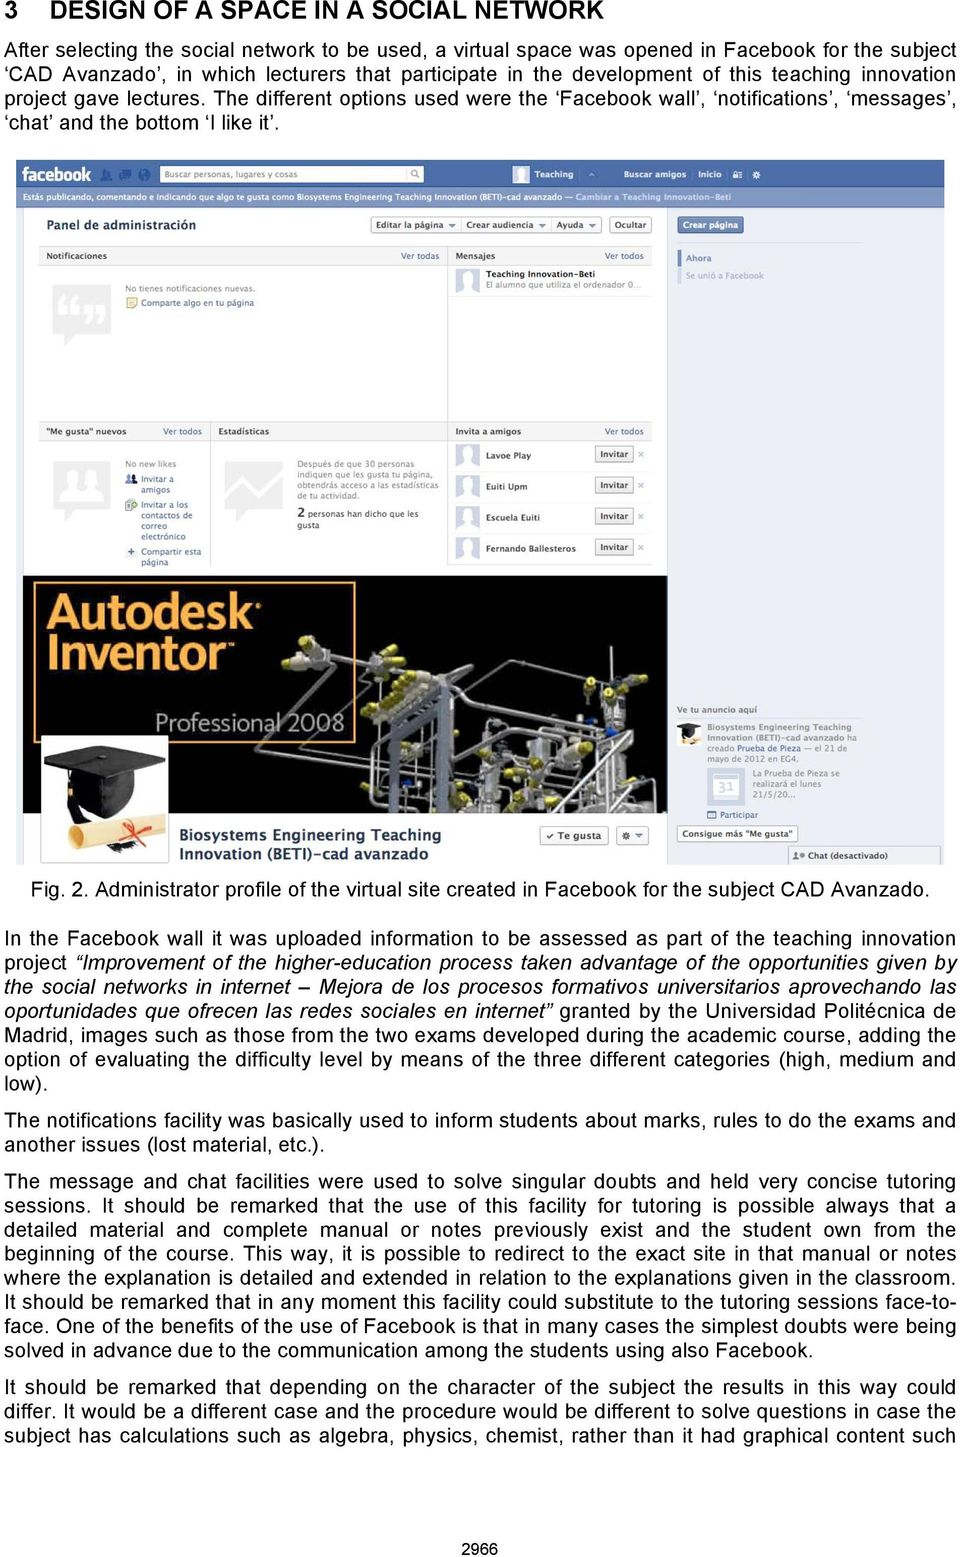 Administrator profile of the virtual site created in Facebook for the subject CAD Avanzado.